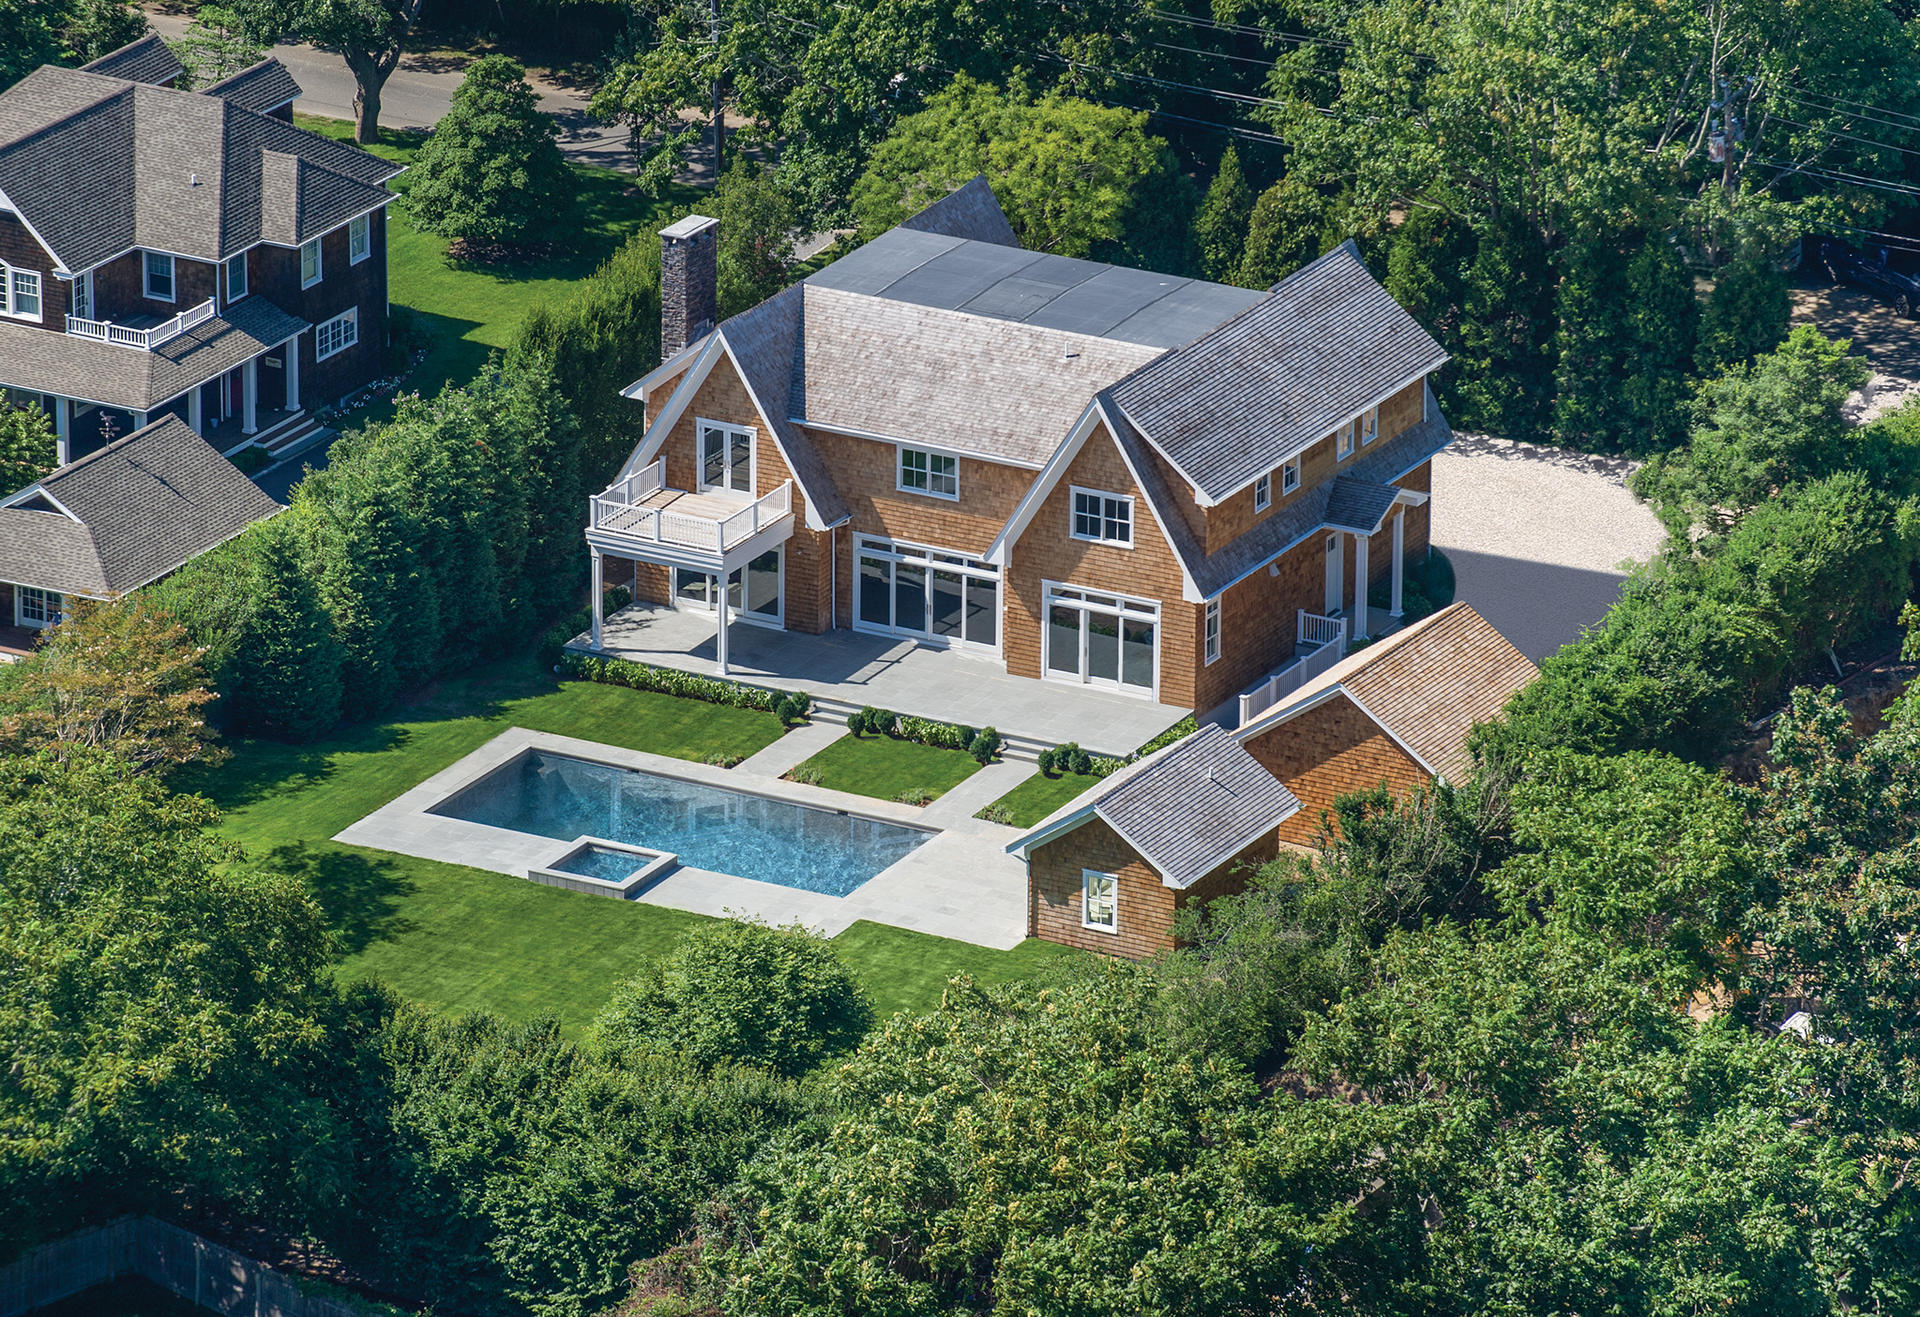 Single Family Home for Sale at New Construction Southampton Village/Large, Beautiful Property 128 West Prospect Street, Southampton, New York